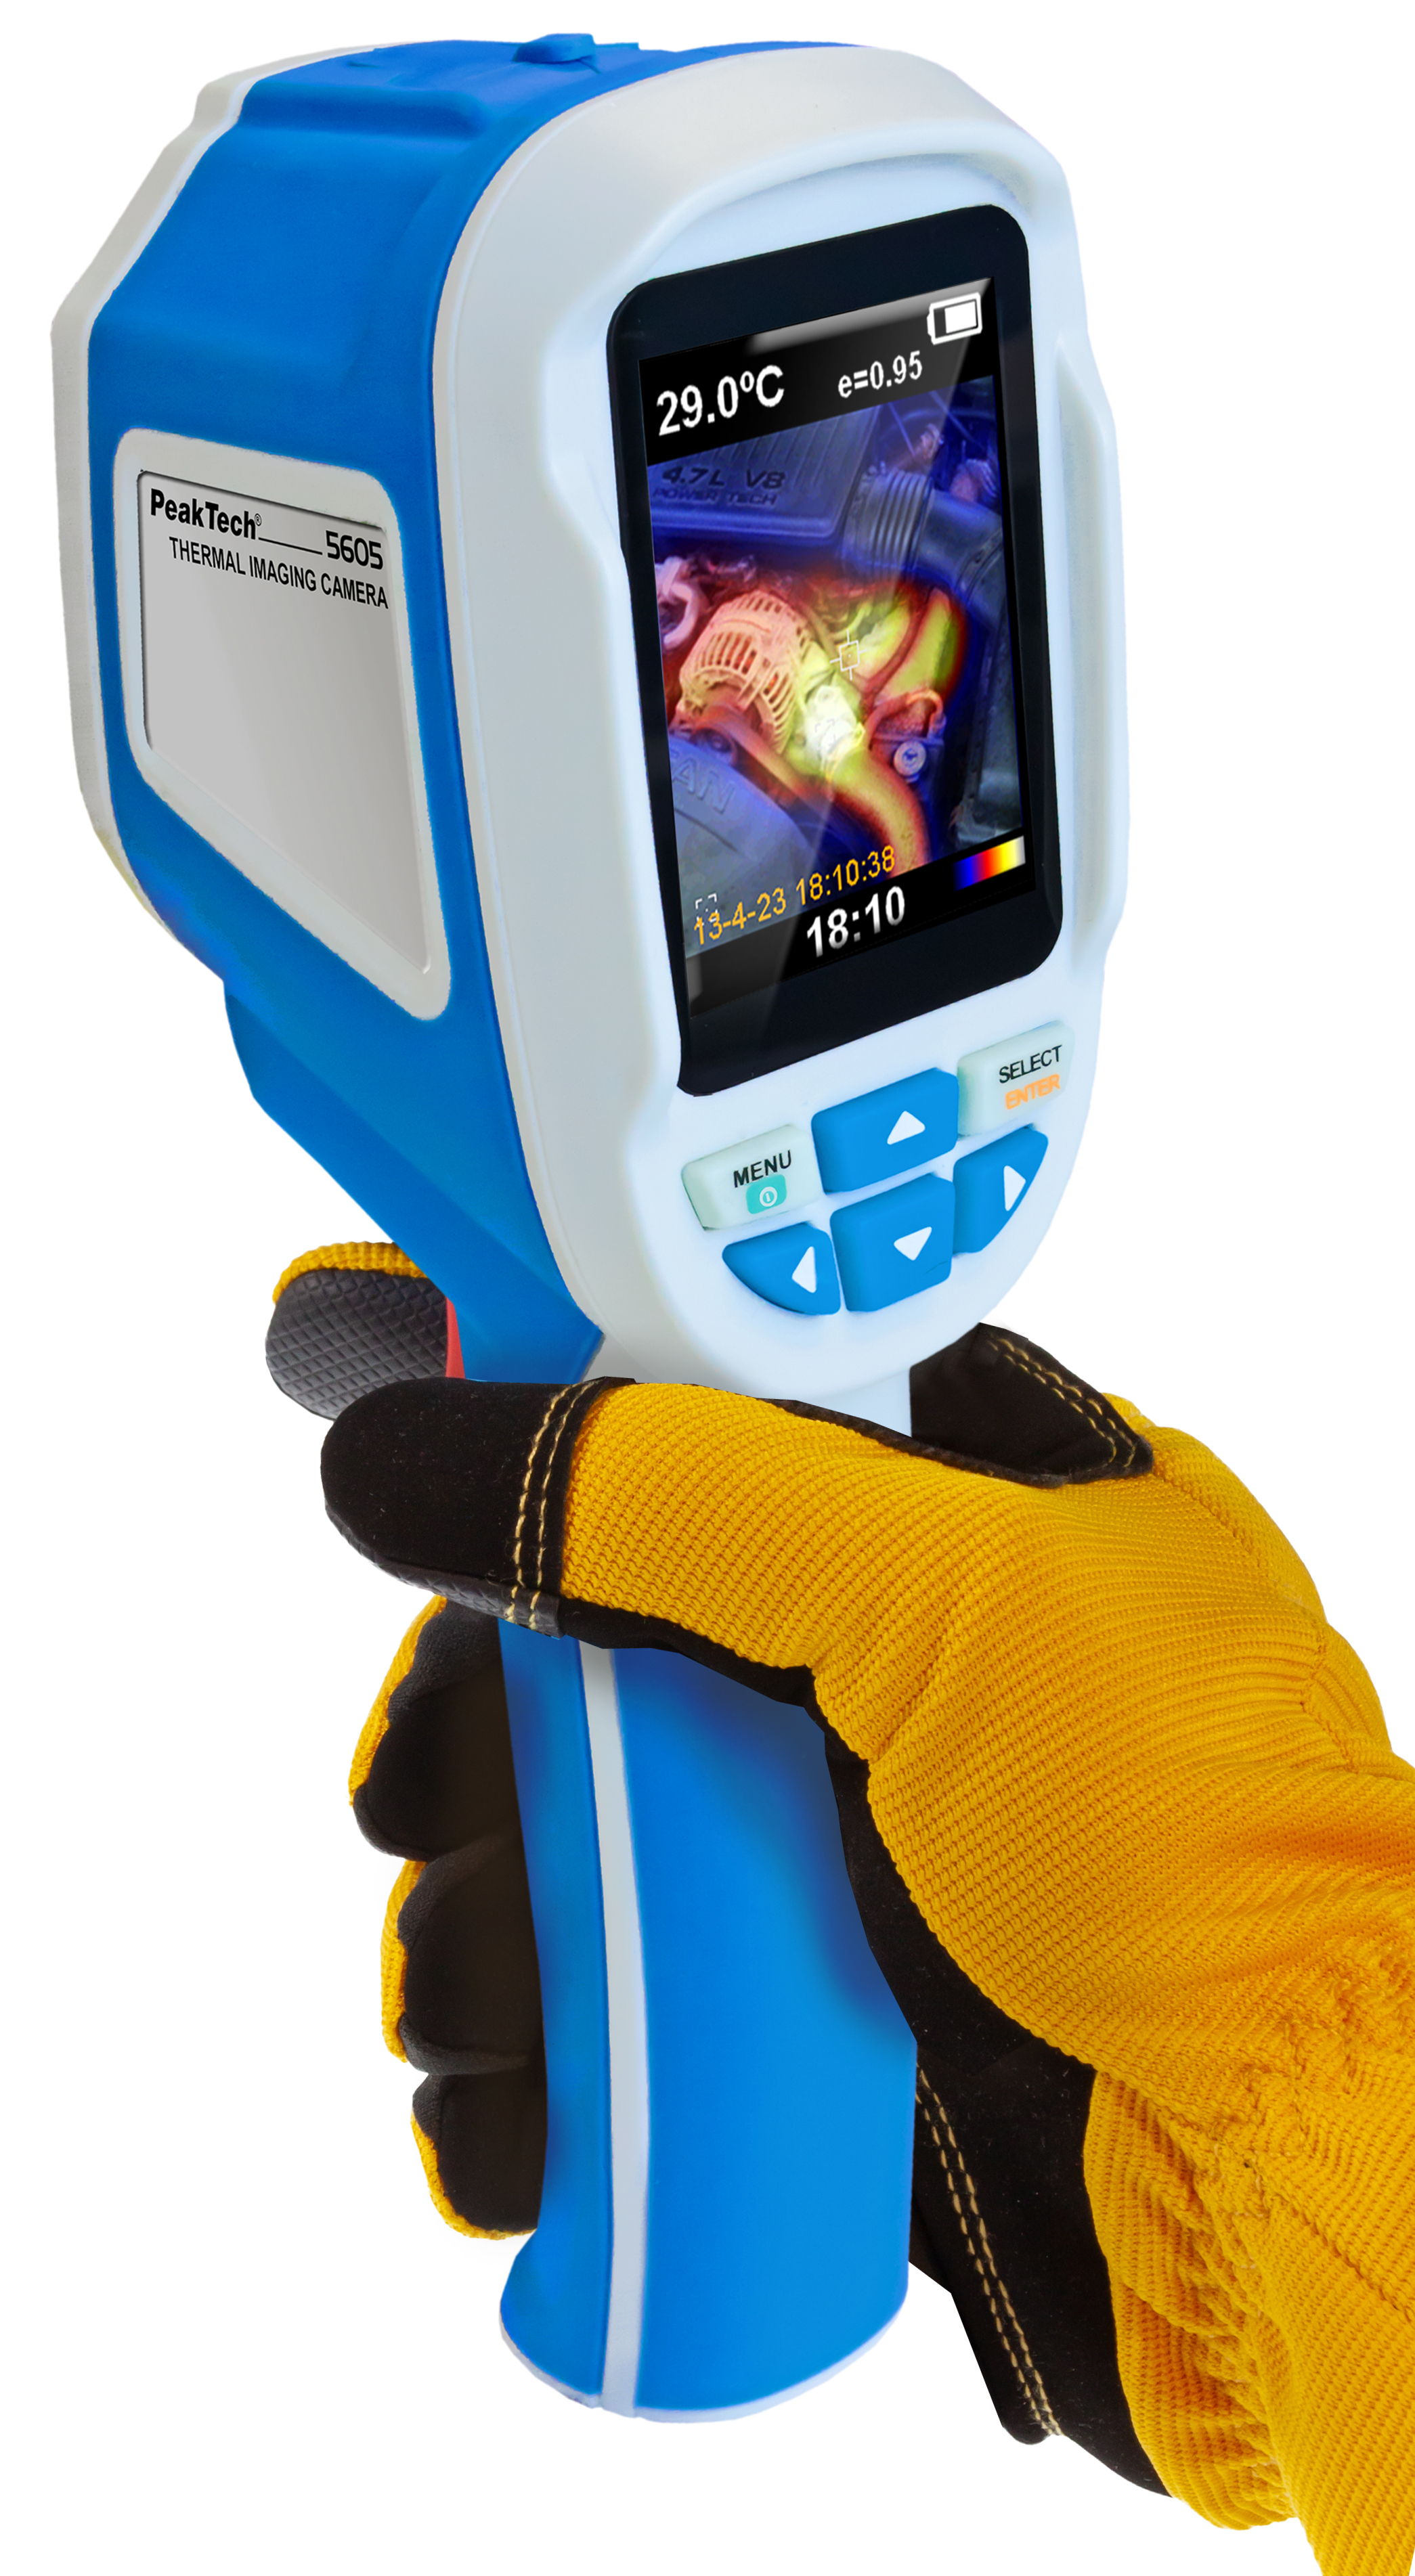 «PeakTech® P 5605» Thermal Imaging Camera, 60 x 60 px.